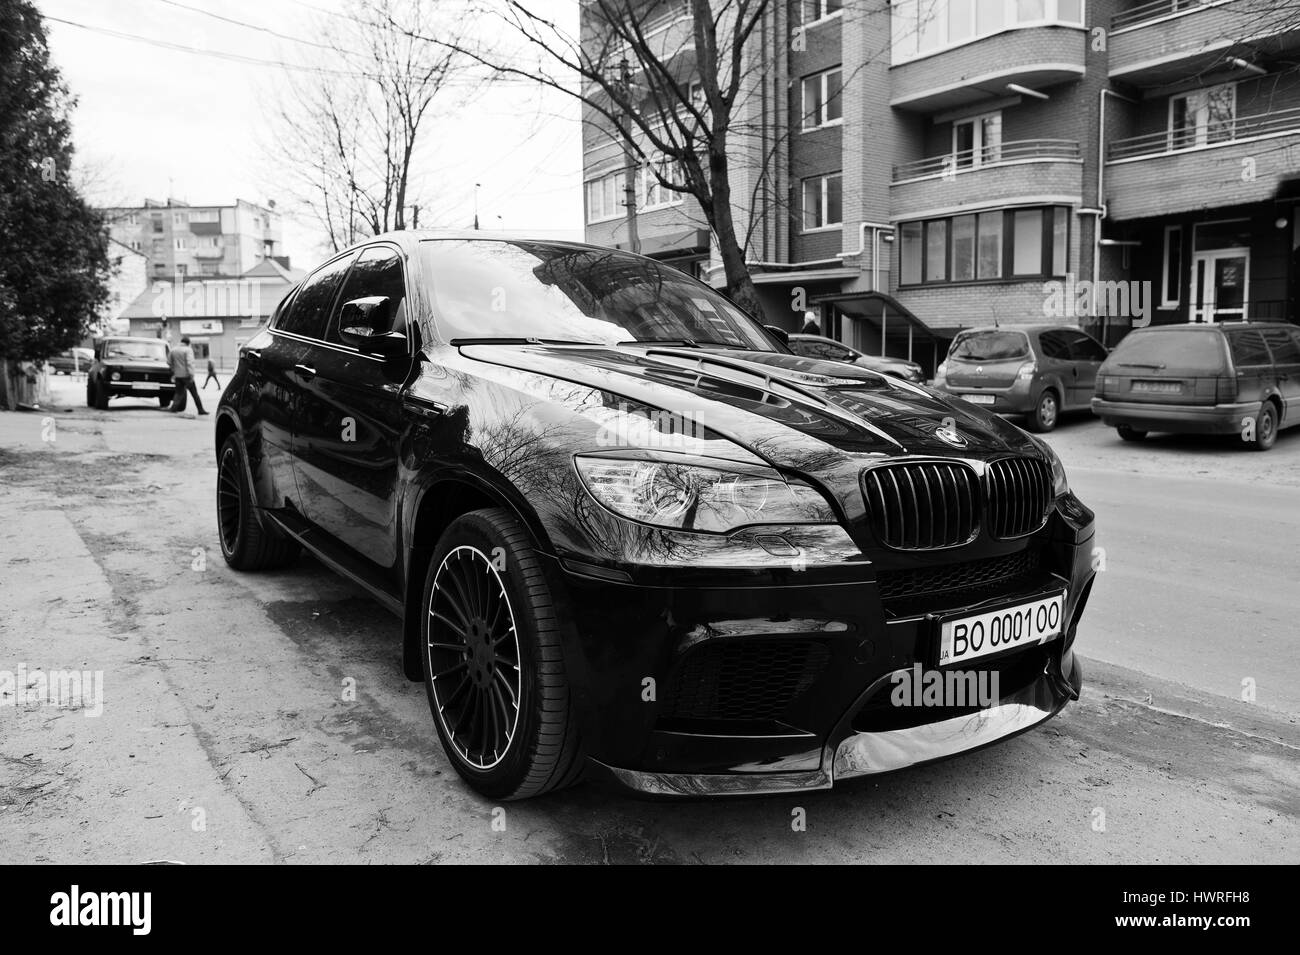 kiev ukraine march 22 2017 black bmw x6 m performance. Black Bedroom Furniture Sets. Home Design Ideas